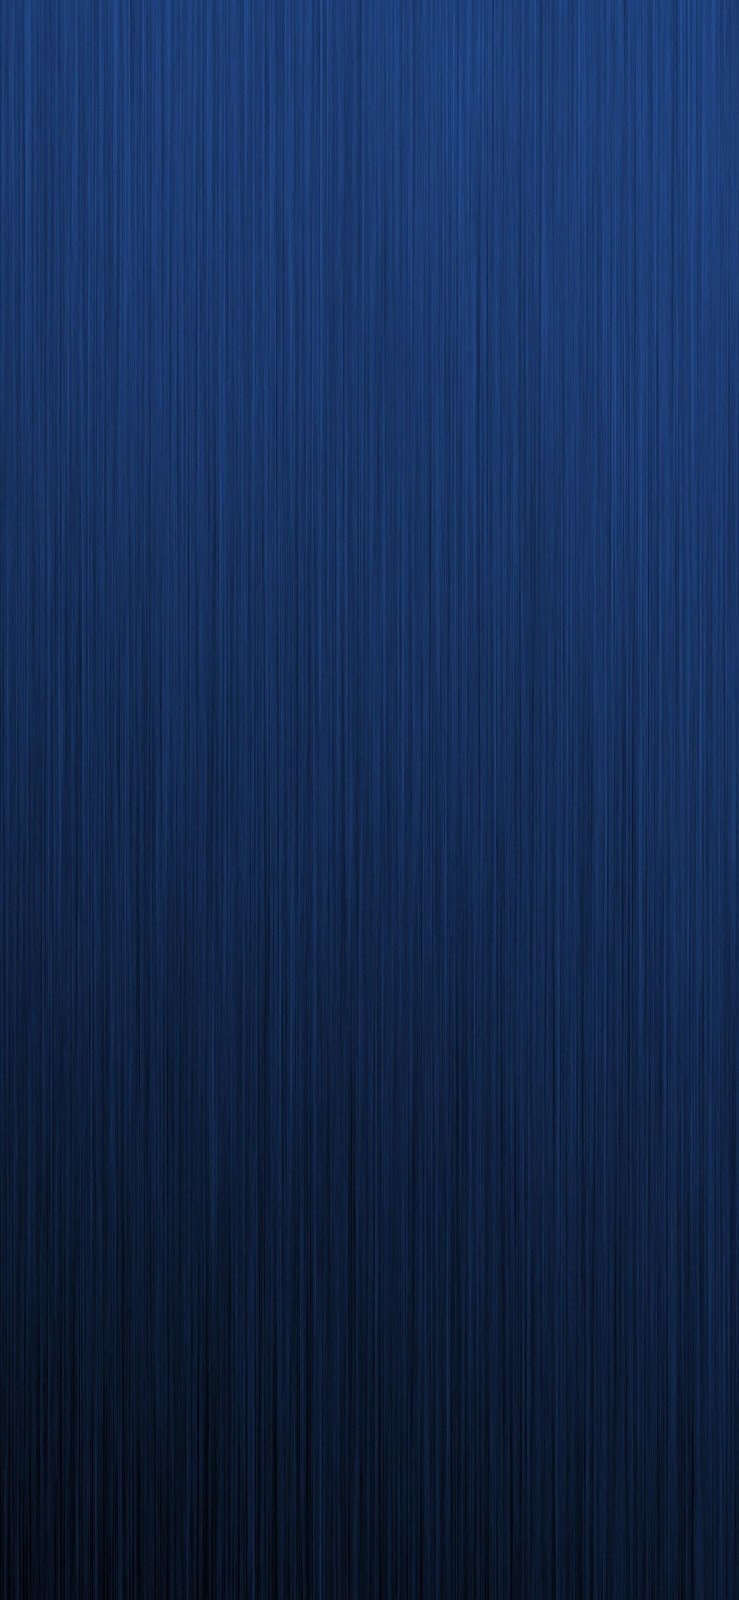 Metal Blue Abstract 4k Iphone X,Iphone 10 HD 4k Wallpapers